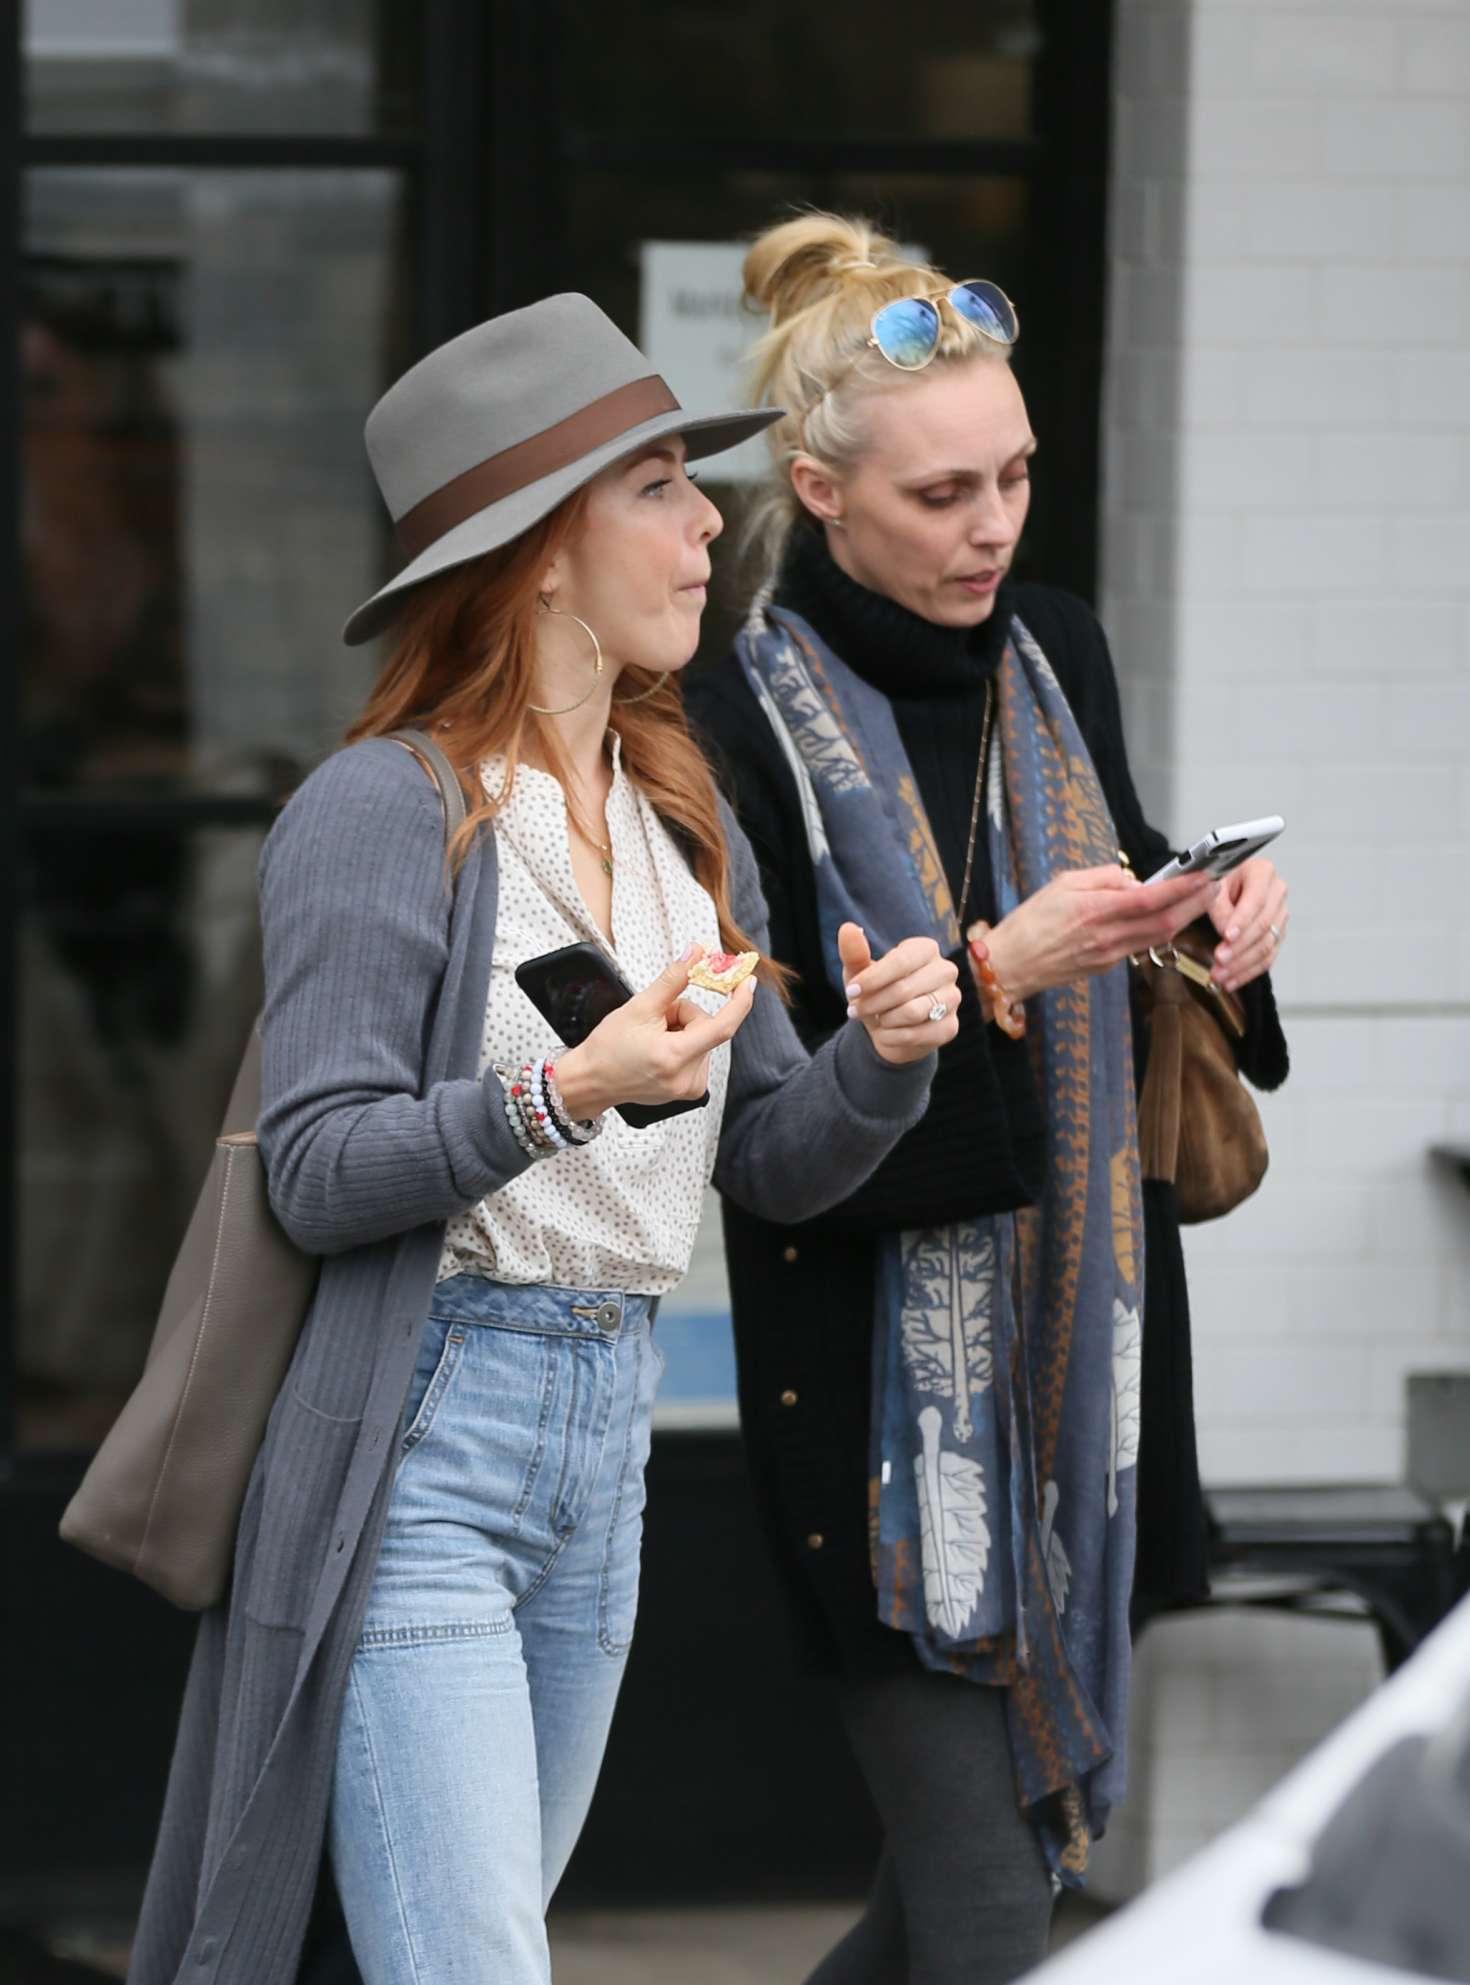 Julianne Hough out for lunch with a friend in LA